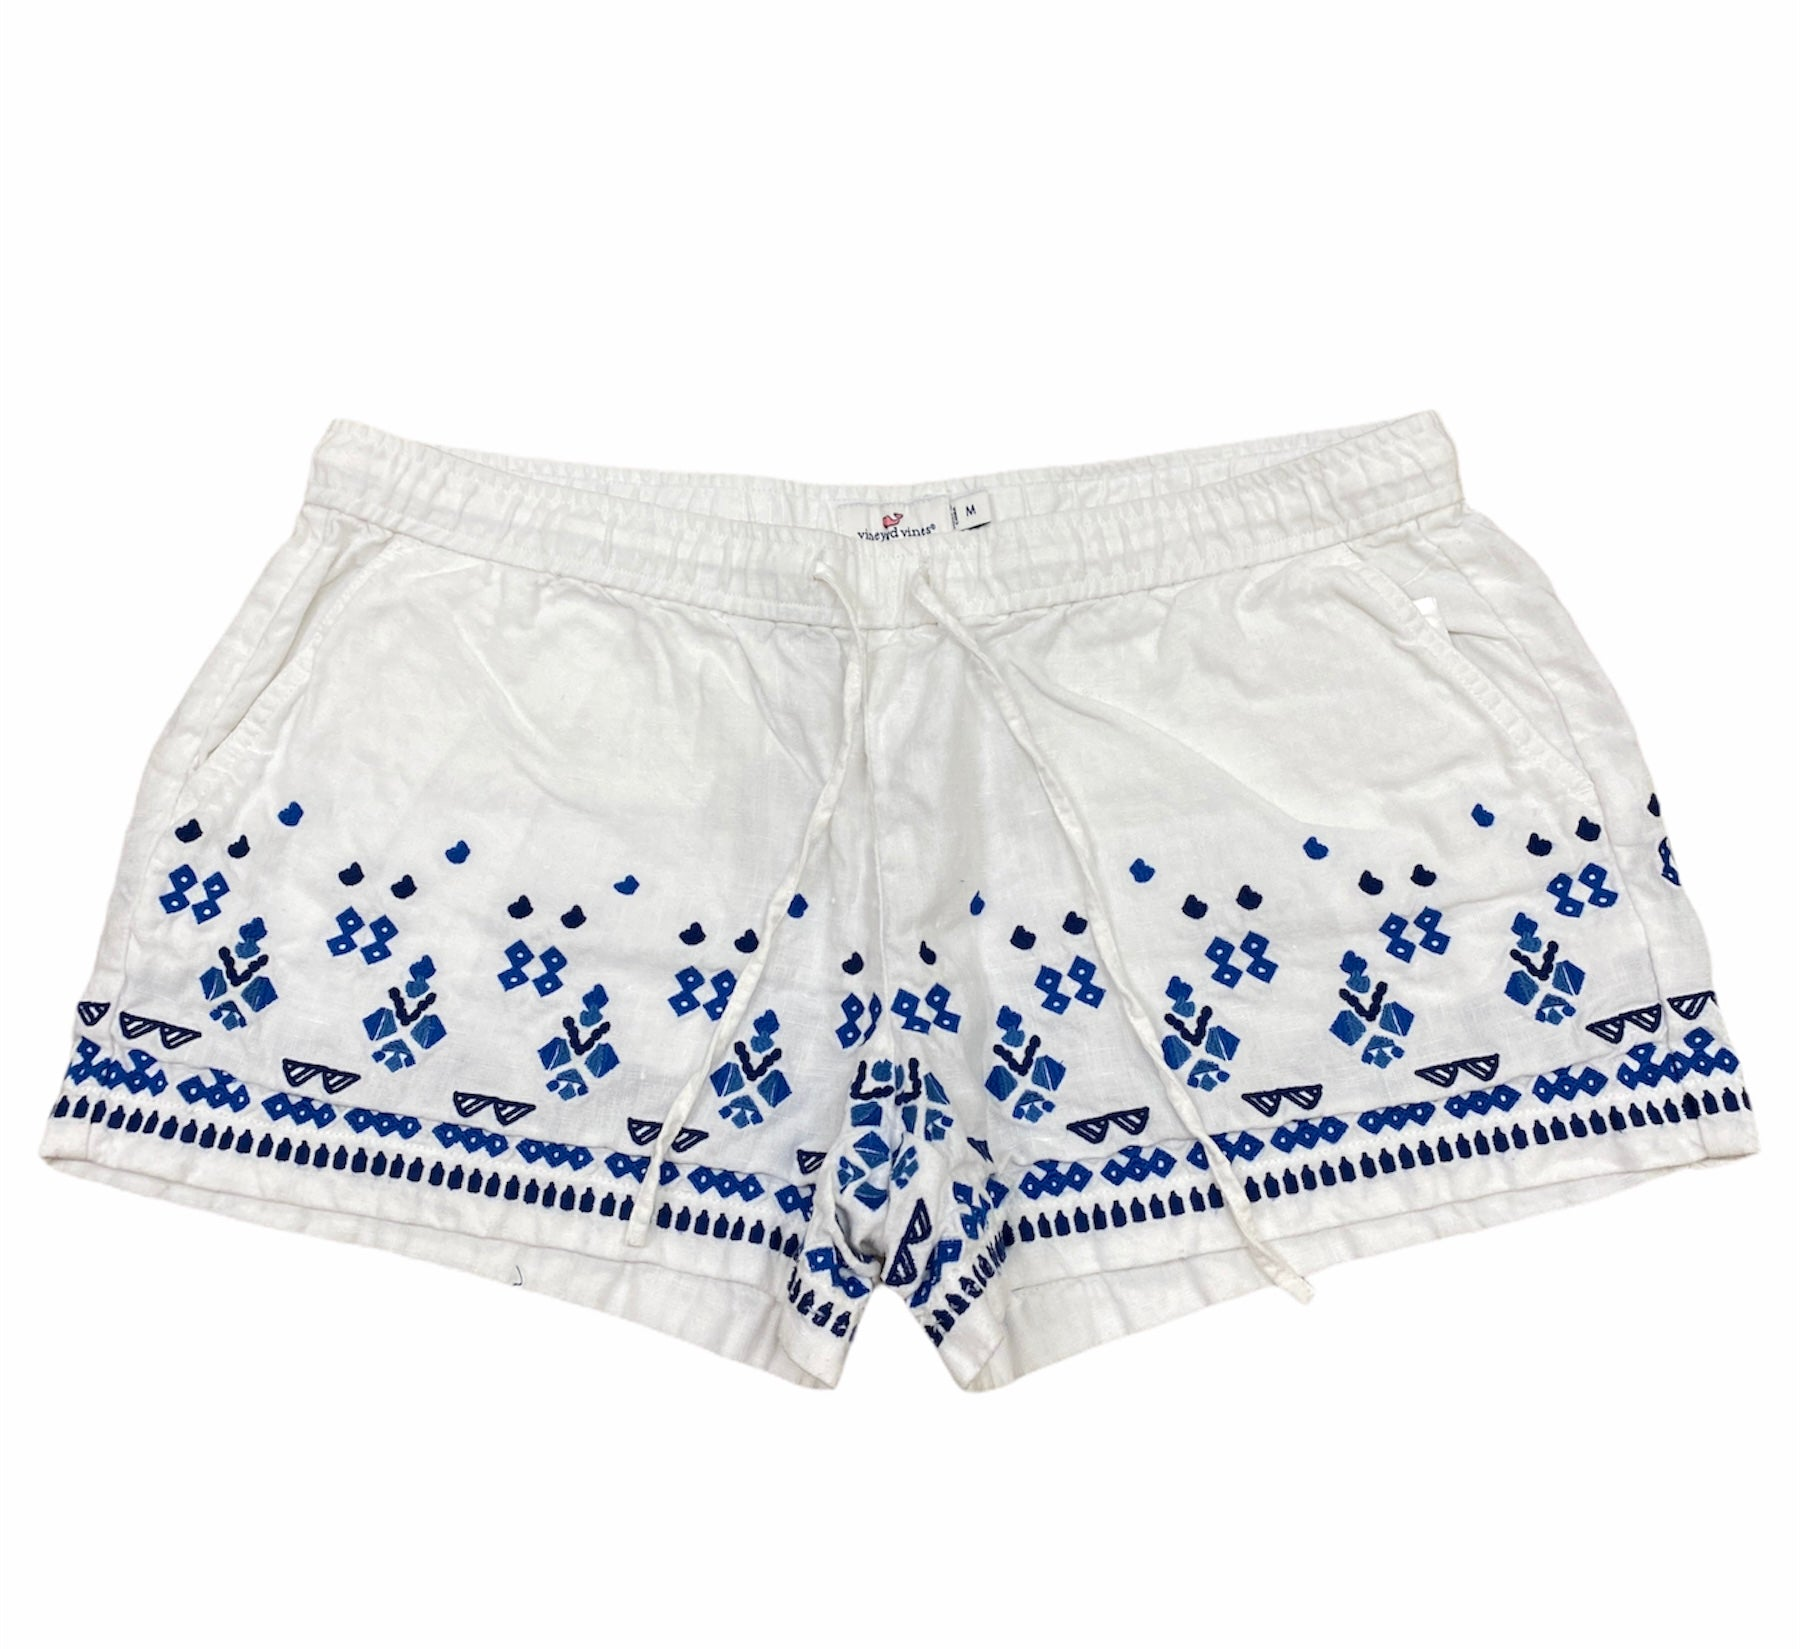 Primary Photo - BRAND: VINEYARD VINES <BR>STYLE: SHORTS <BR>COLOR: WHITE BLUE <BR>SIZE: M <BR>SKU: 223-22318-117772